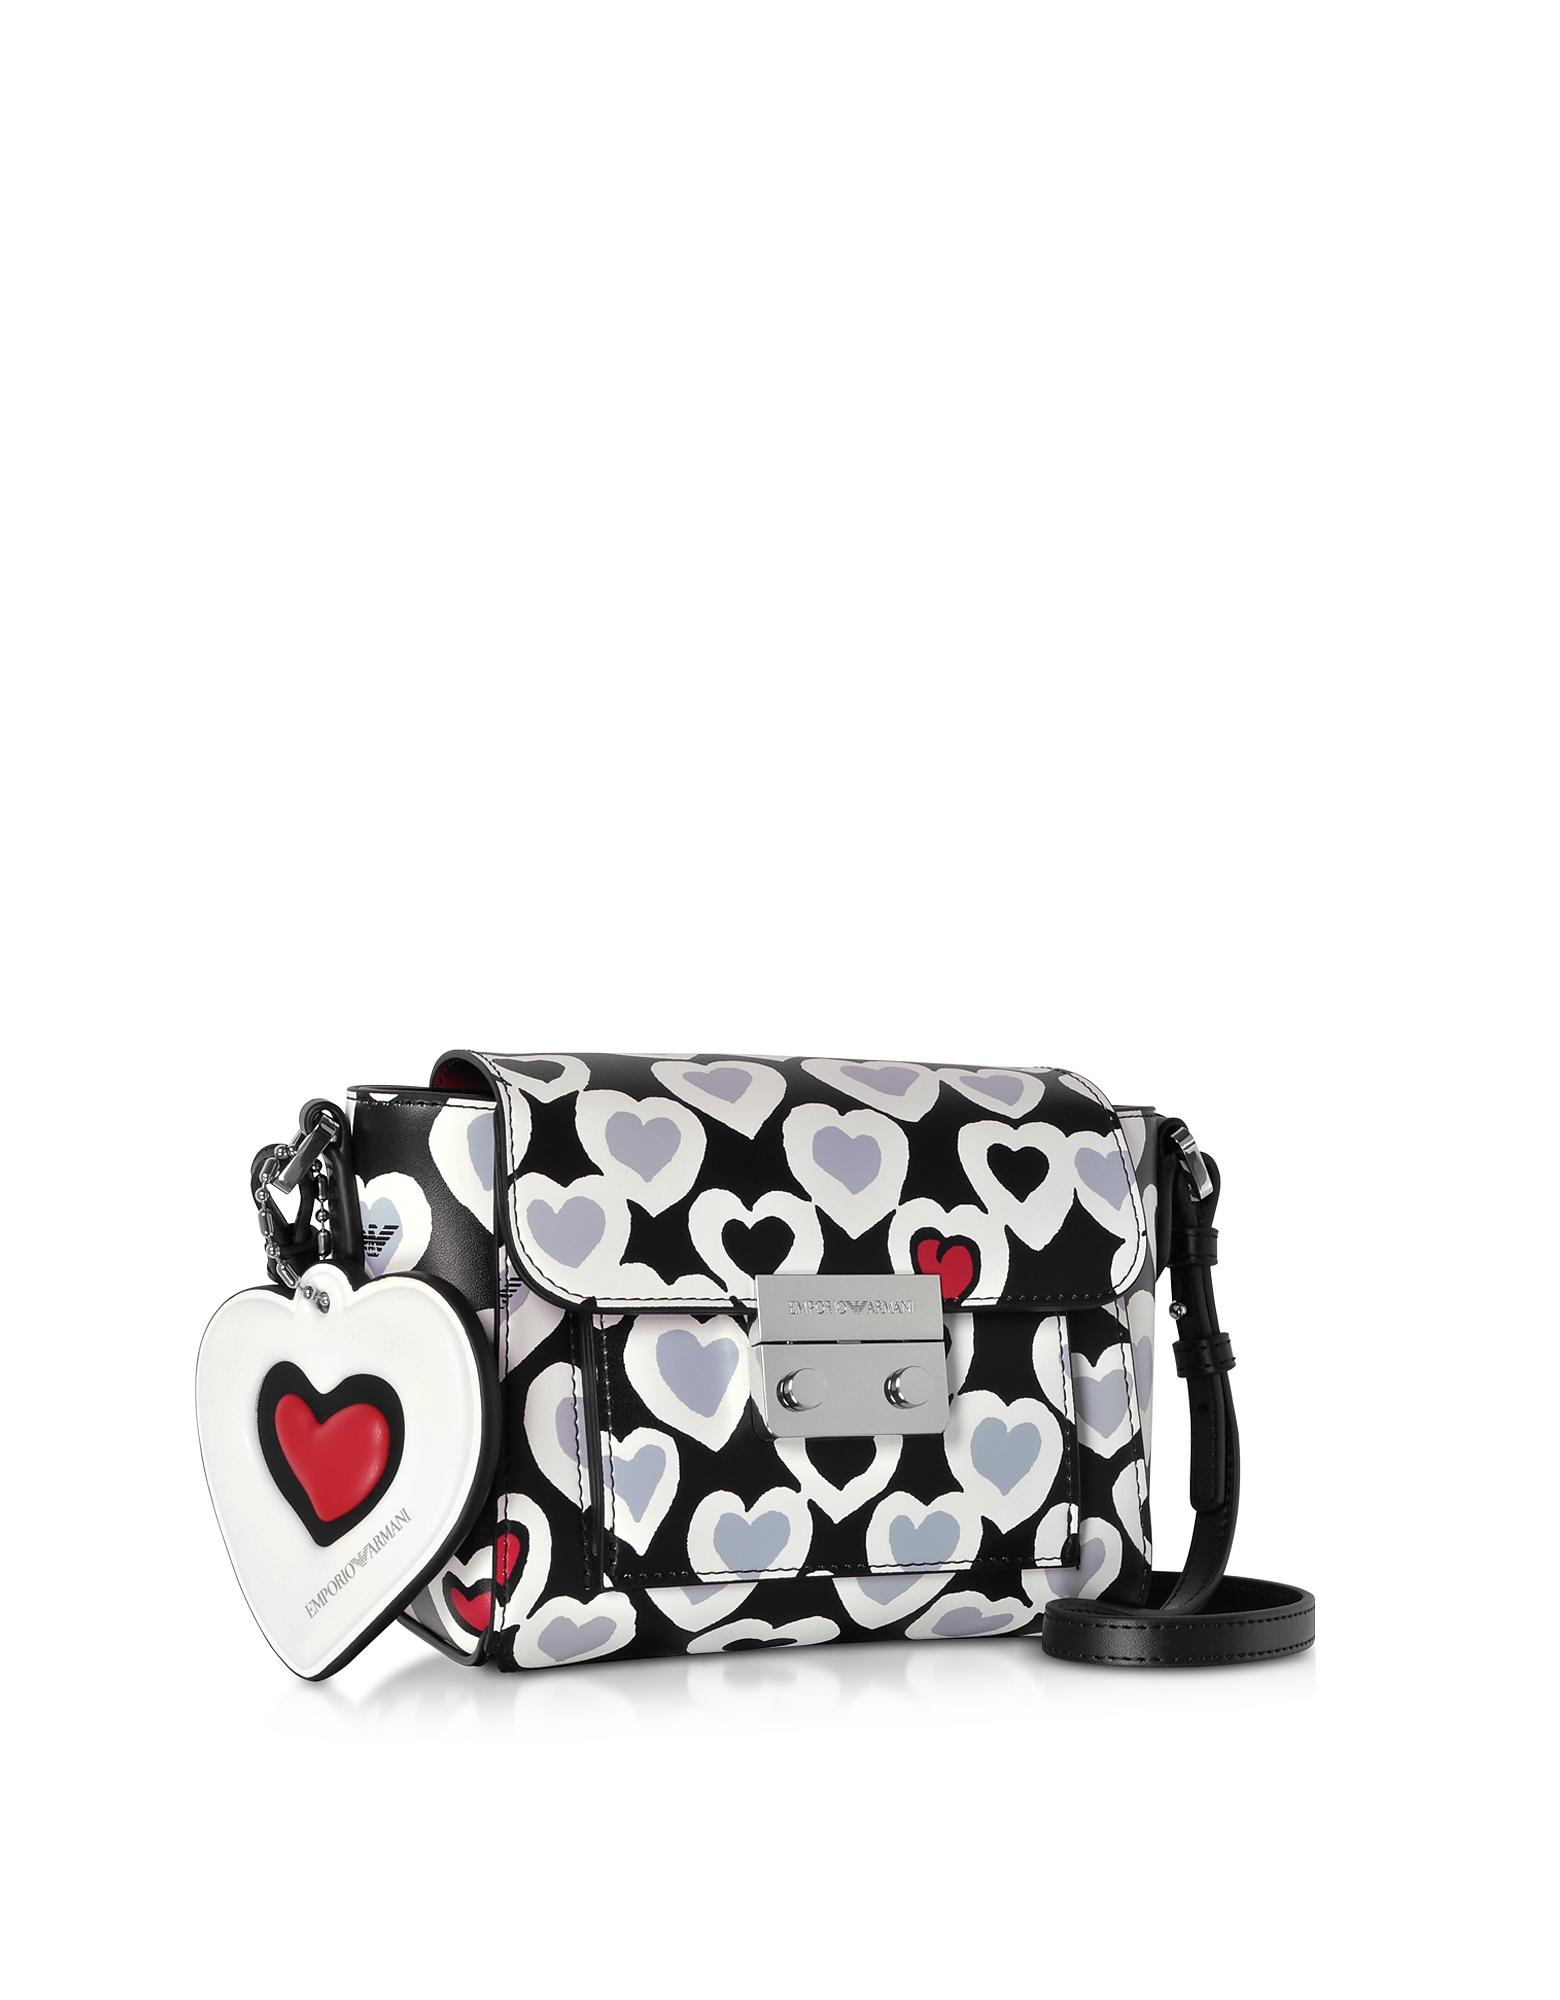 e2f545c73fbe Emporio Armani Small Heart Print Shoulder Bag in Black - Lyst